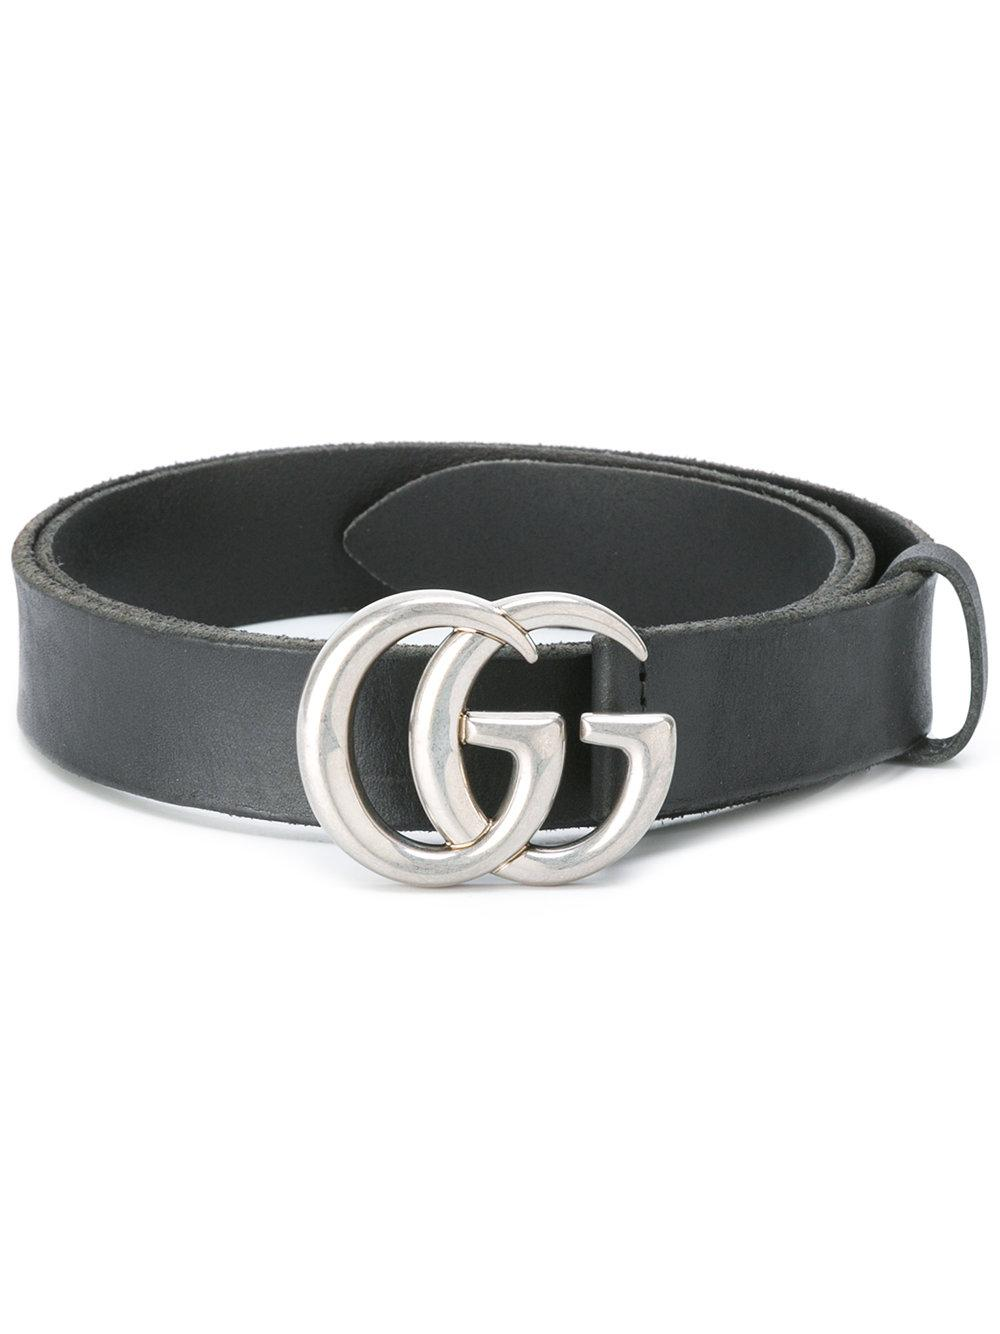 gucci interlocking gg buckle belt in black for men lyst